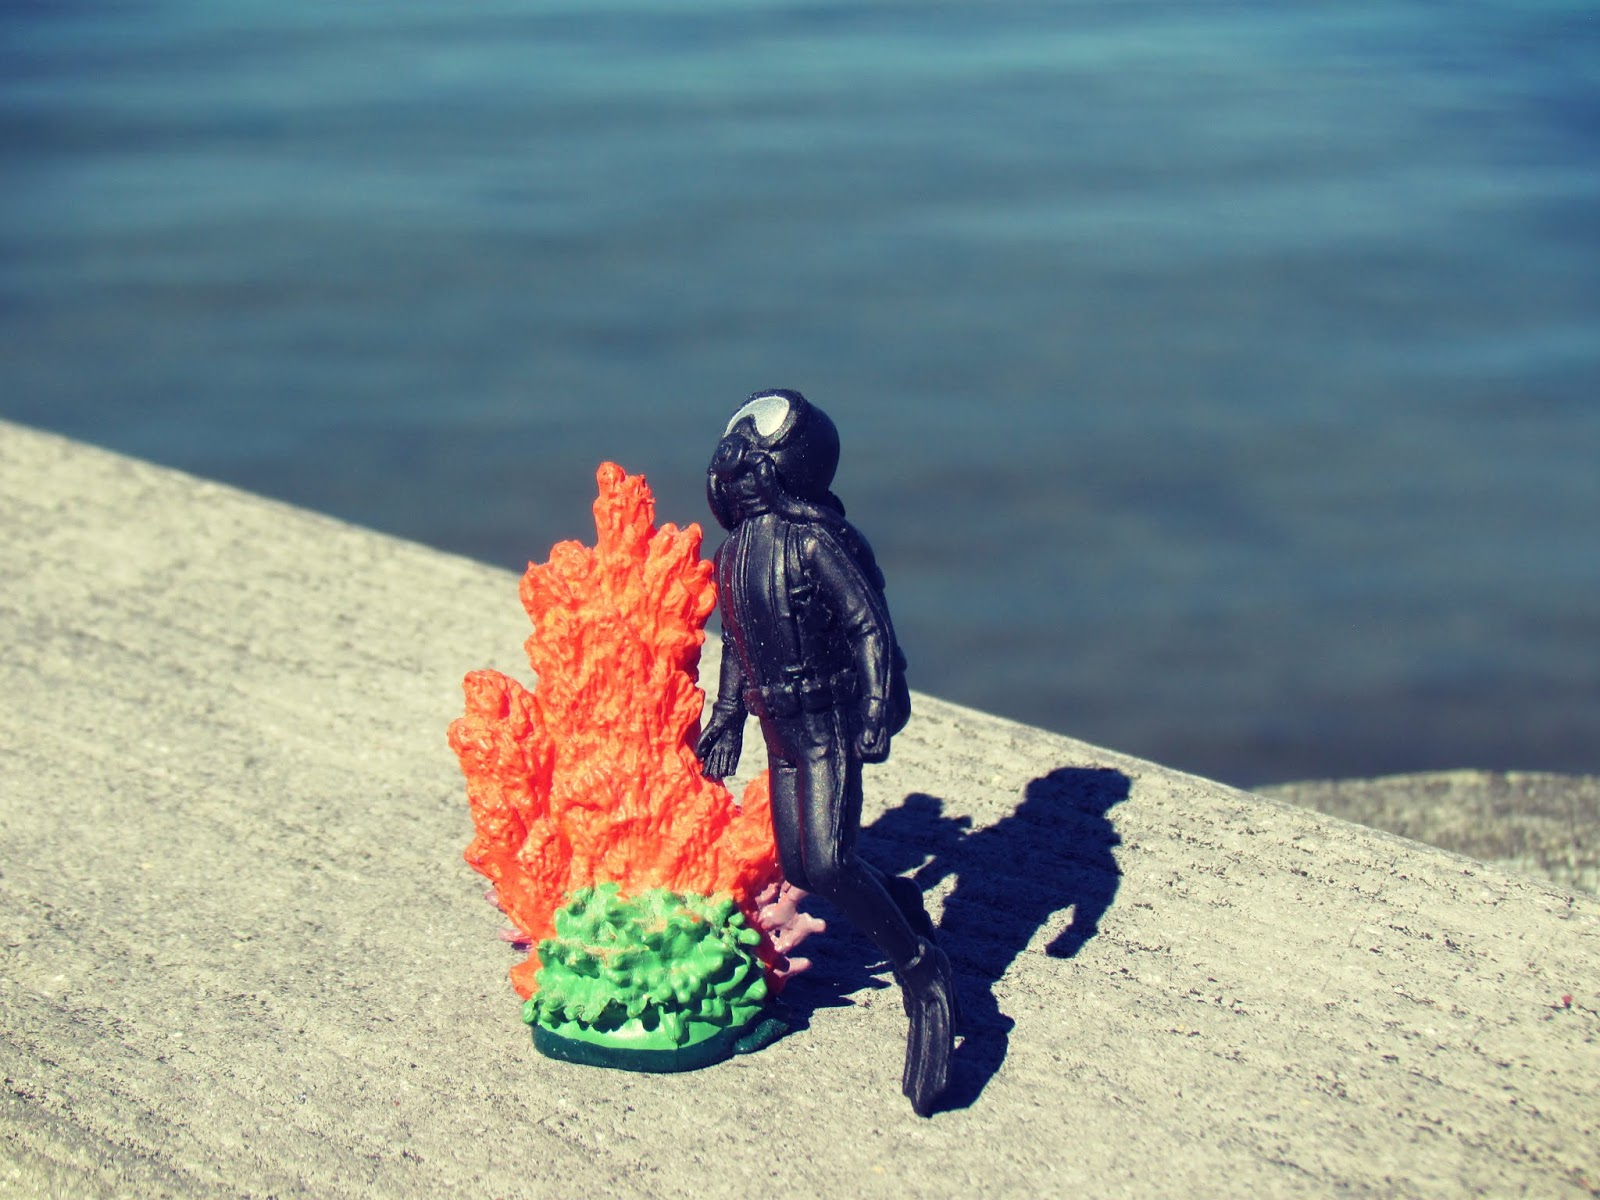 Sea Diver Plastic Toy With Coral Reef on a Blue Ocean Backdrop + Kayaking